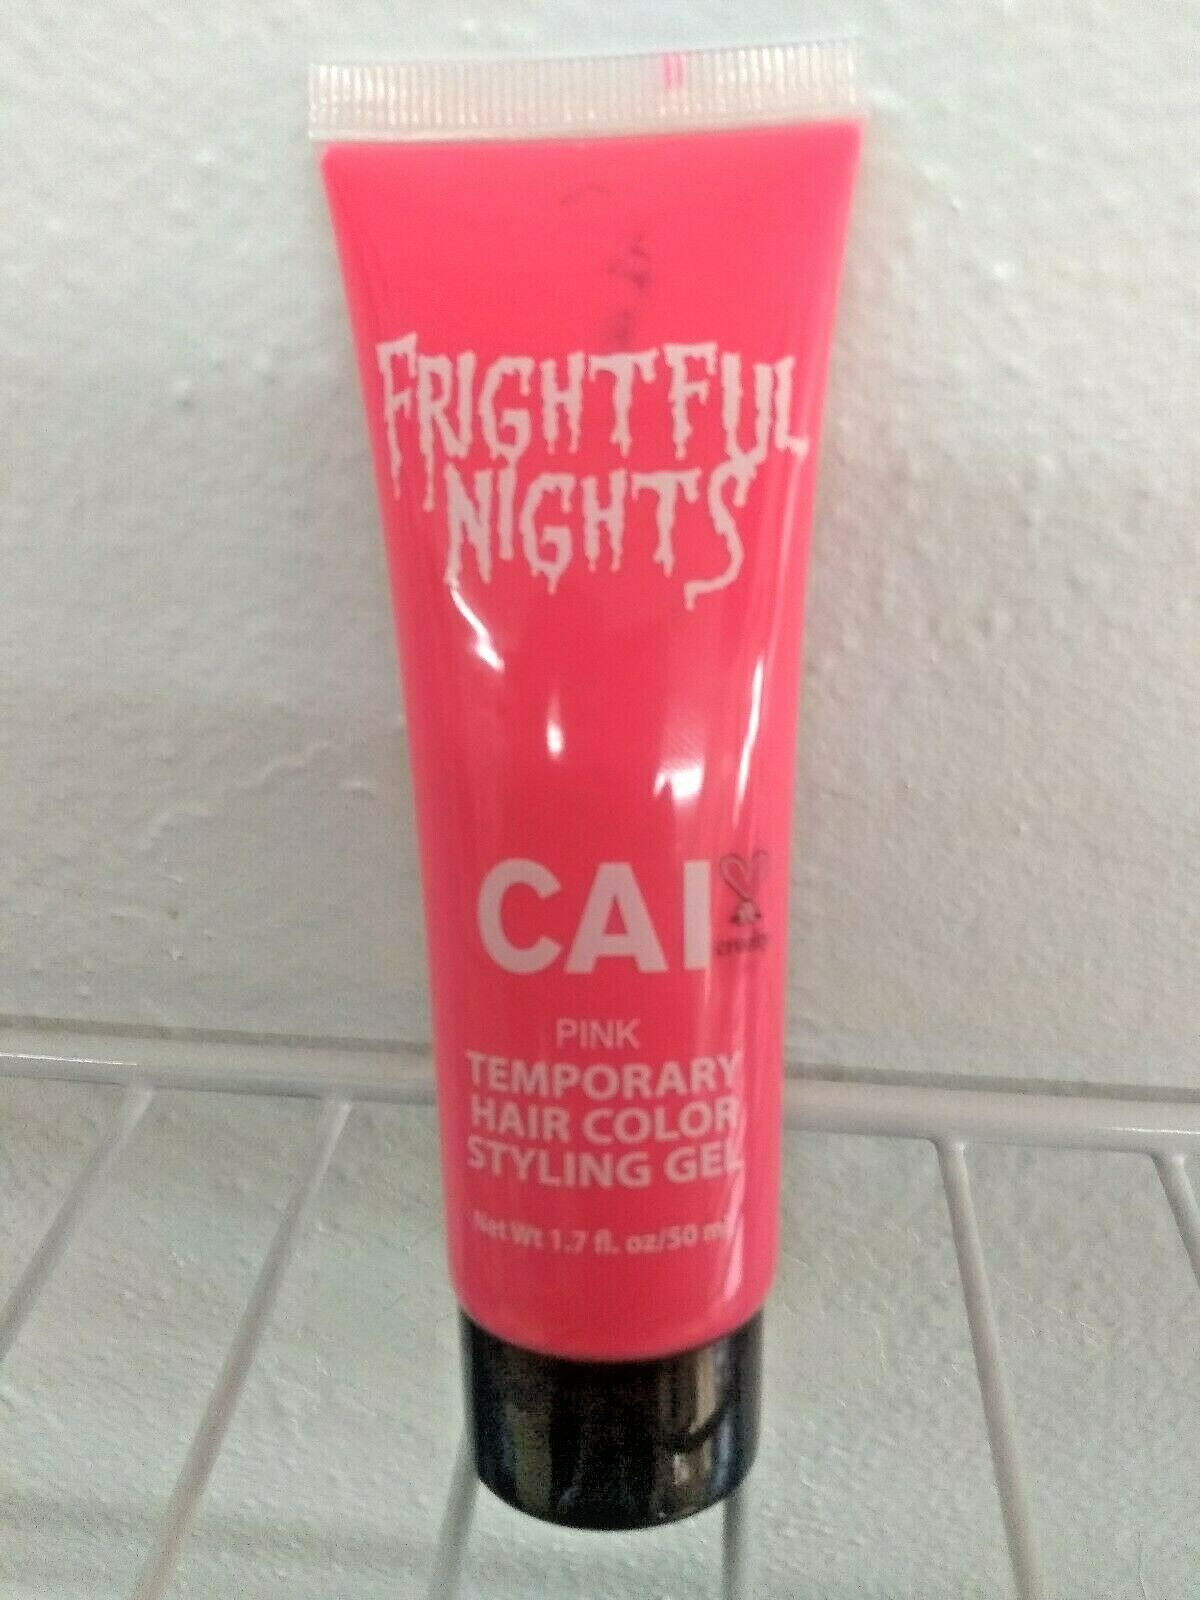 CAI Frightful Nights Temporary Hair Color Styling Gel - PINK NEW - 1.71 FL OZ